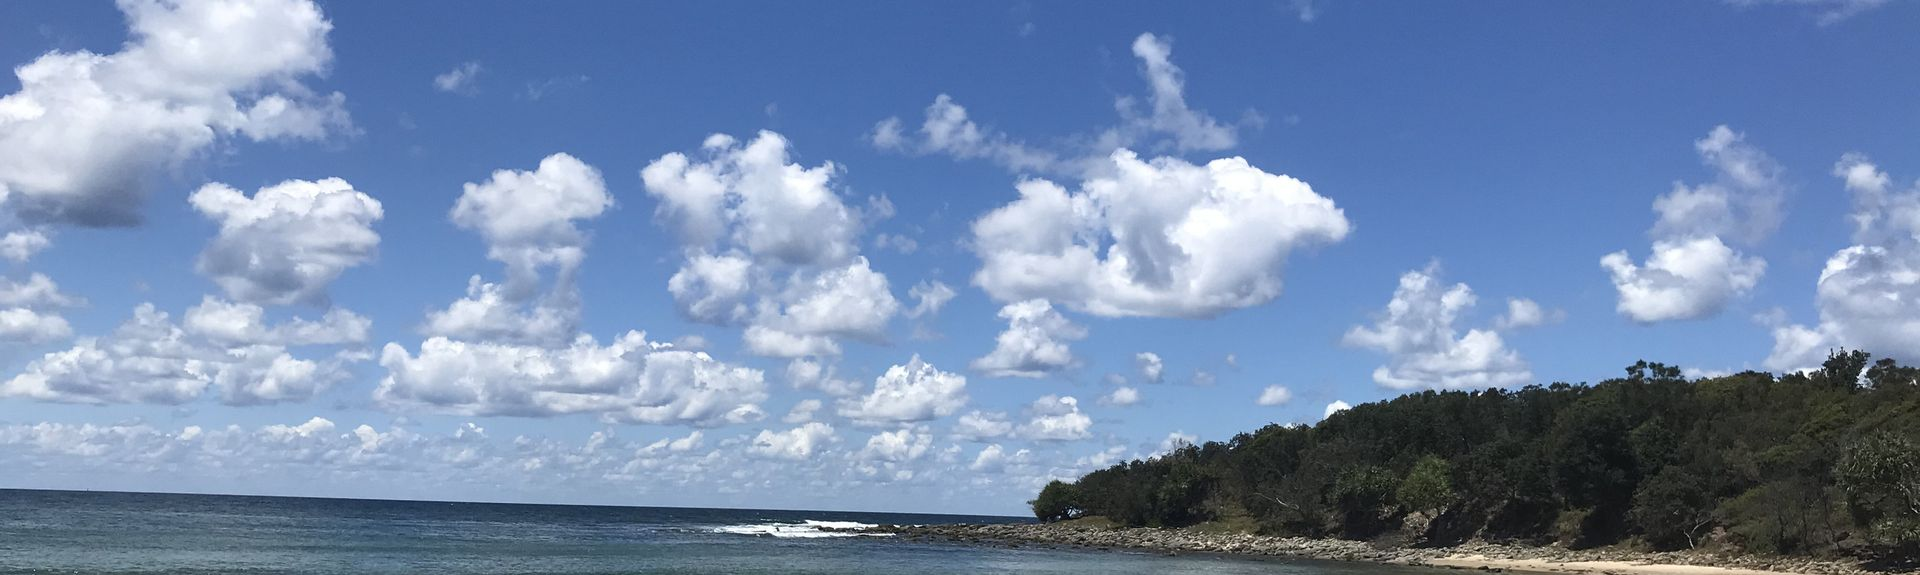 Yamba Beach, Yamba, New South Wales, Australia